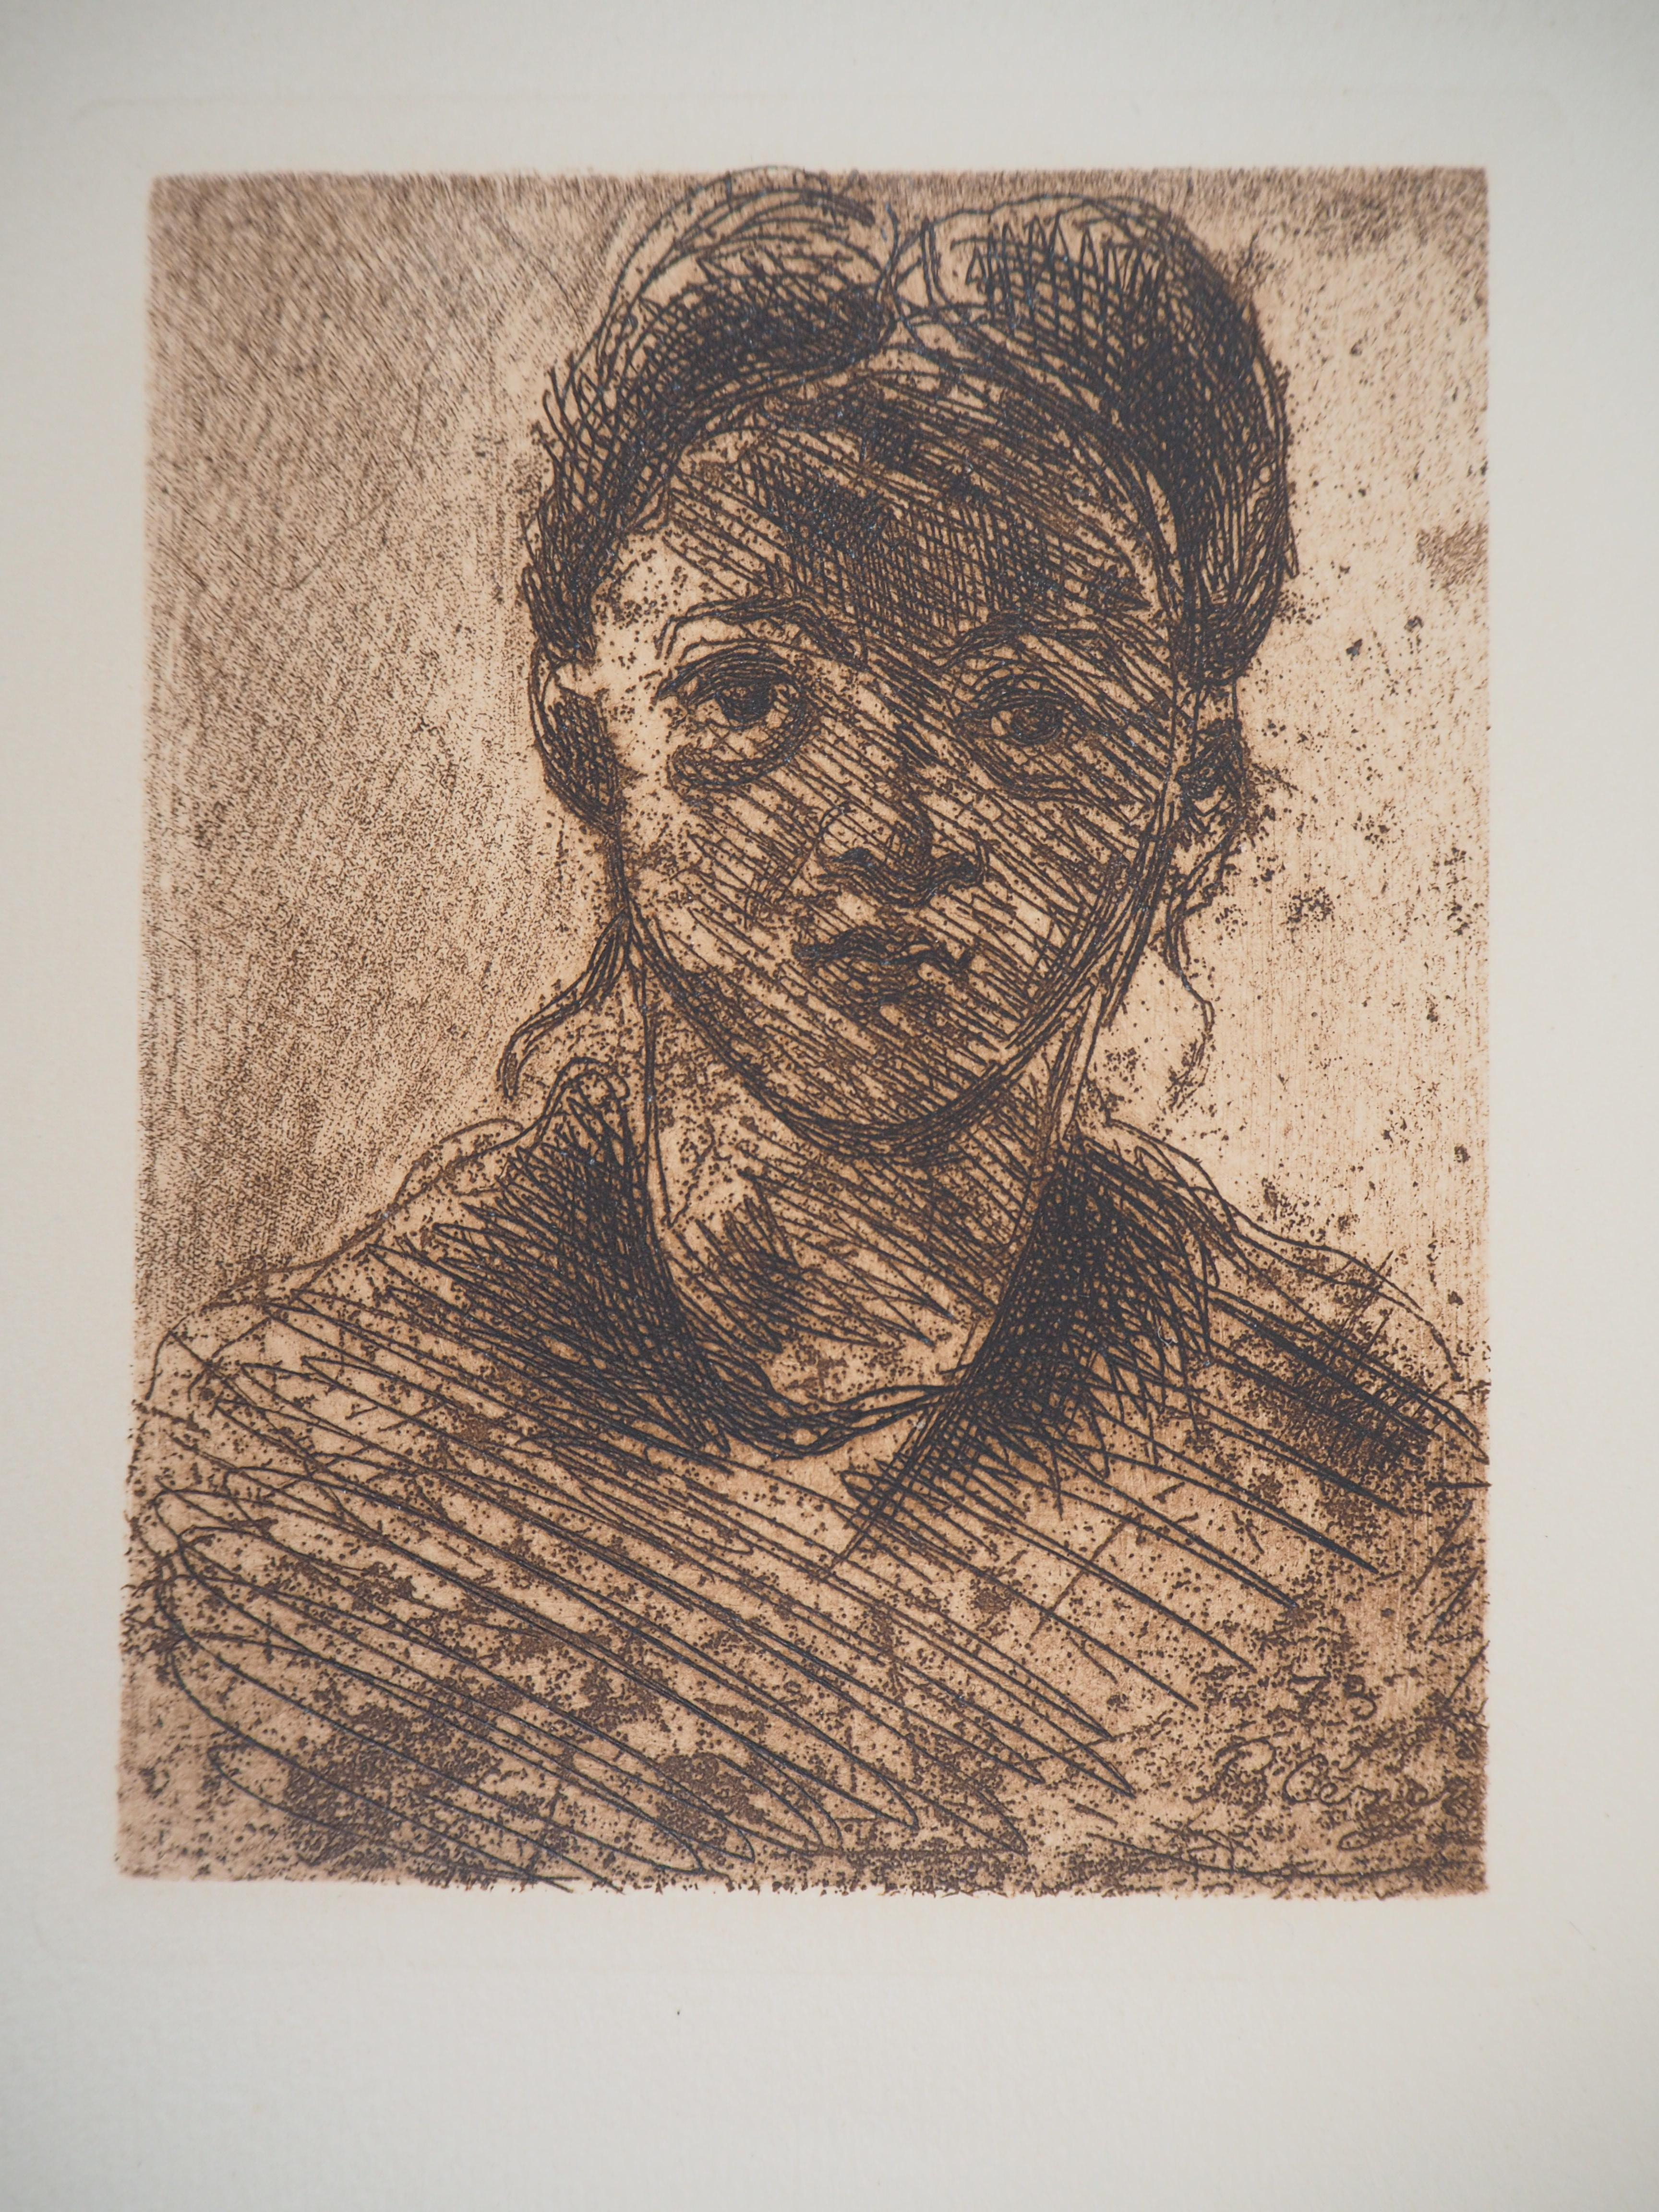 Young girl - Original etching, Signed (1873)